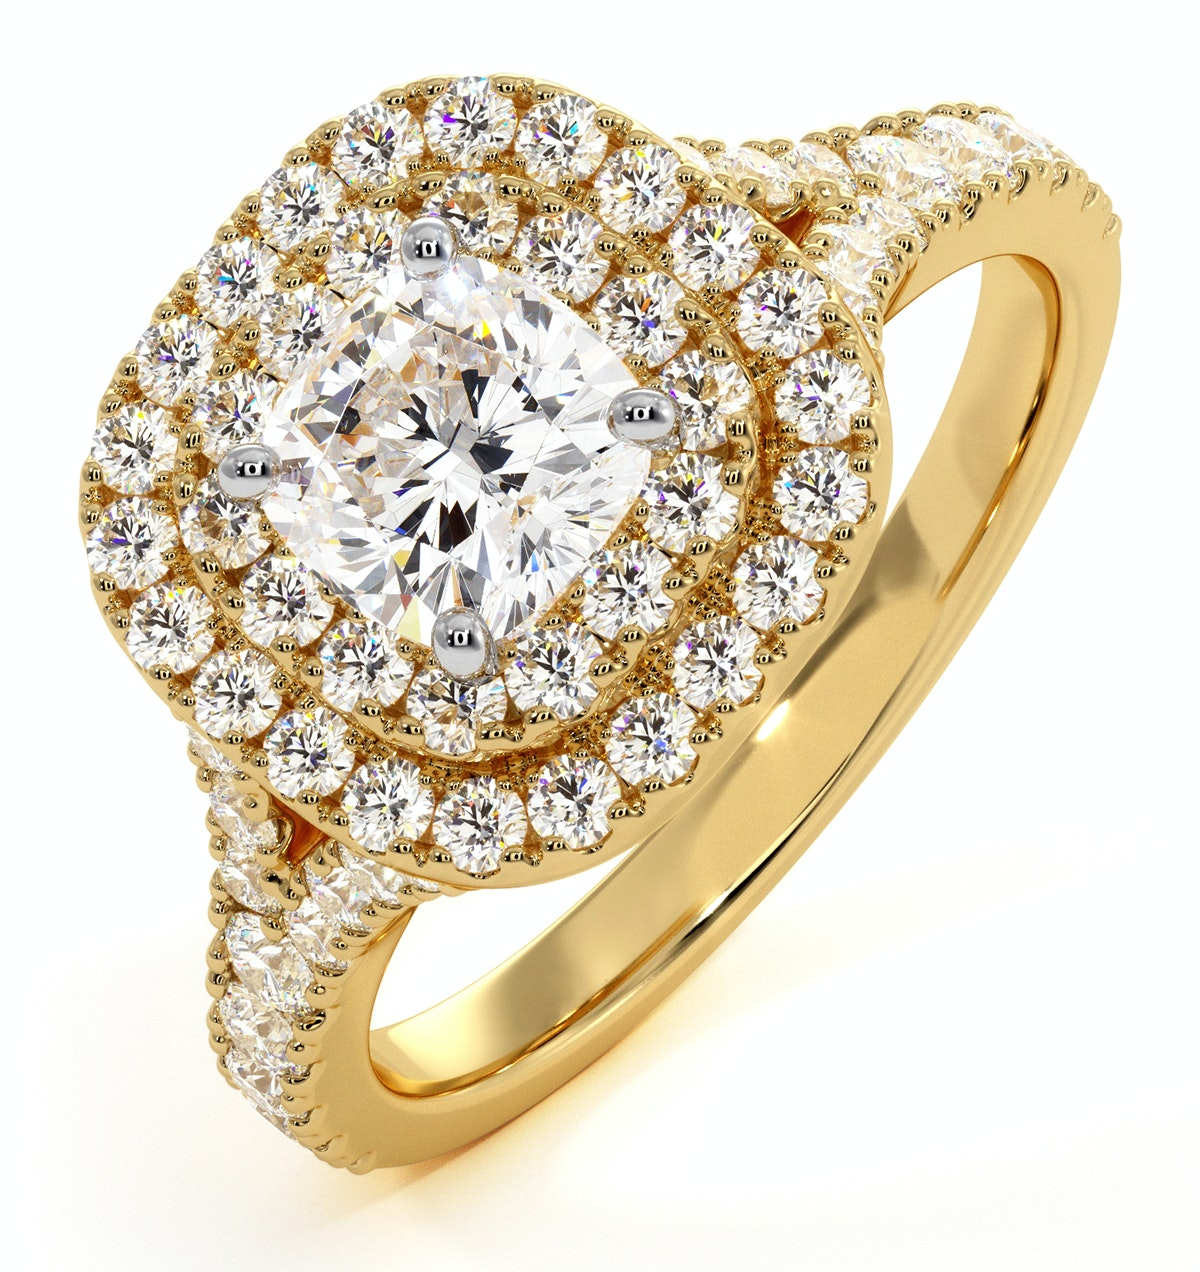 Anastasia GIA Diamond Halo Engagement Ring in 18K Gold 1.30ct G/SI1